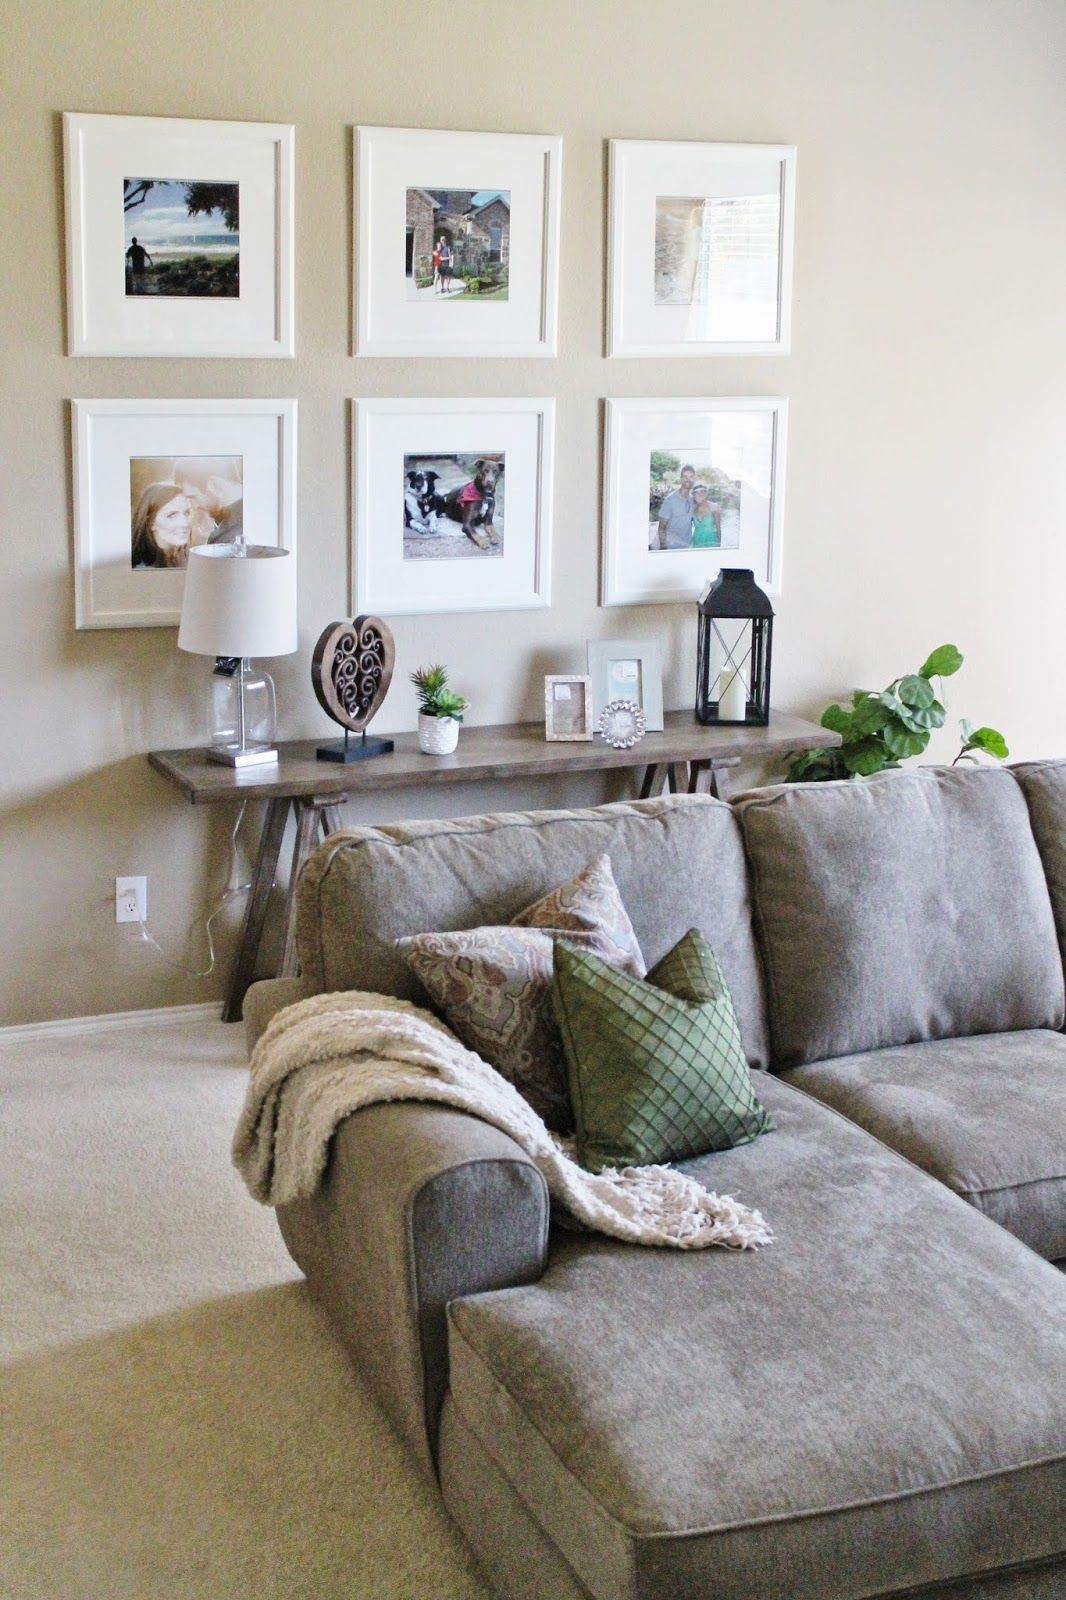 Sofa Table Set Up Living Room Decor Ikea Picture Frame Gallery Wall